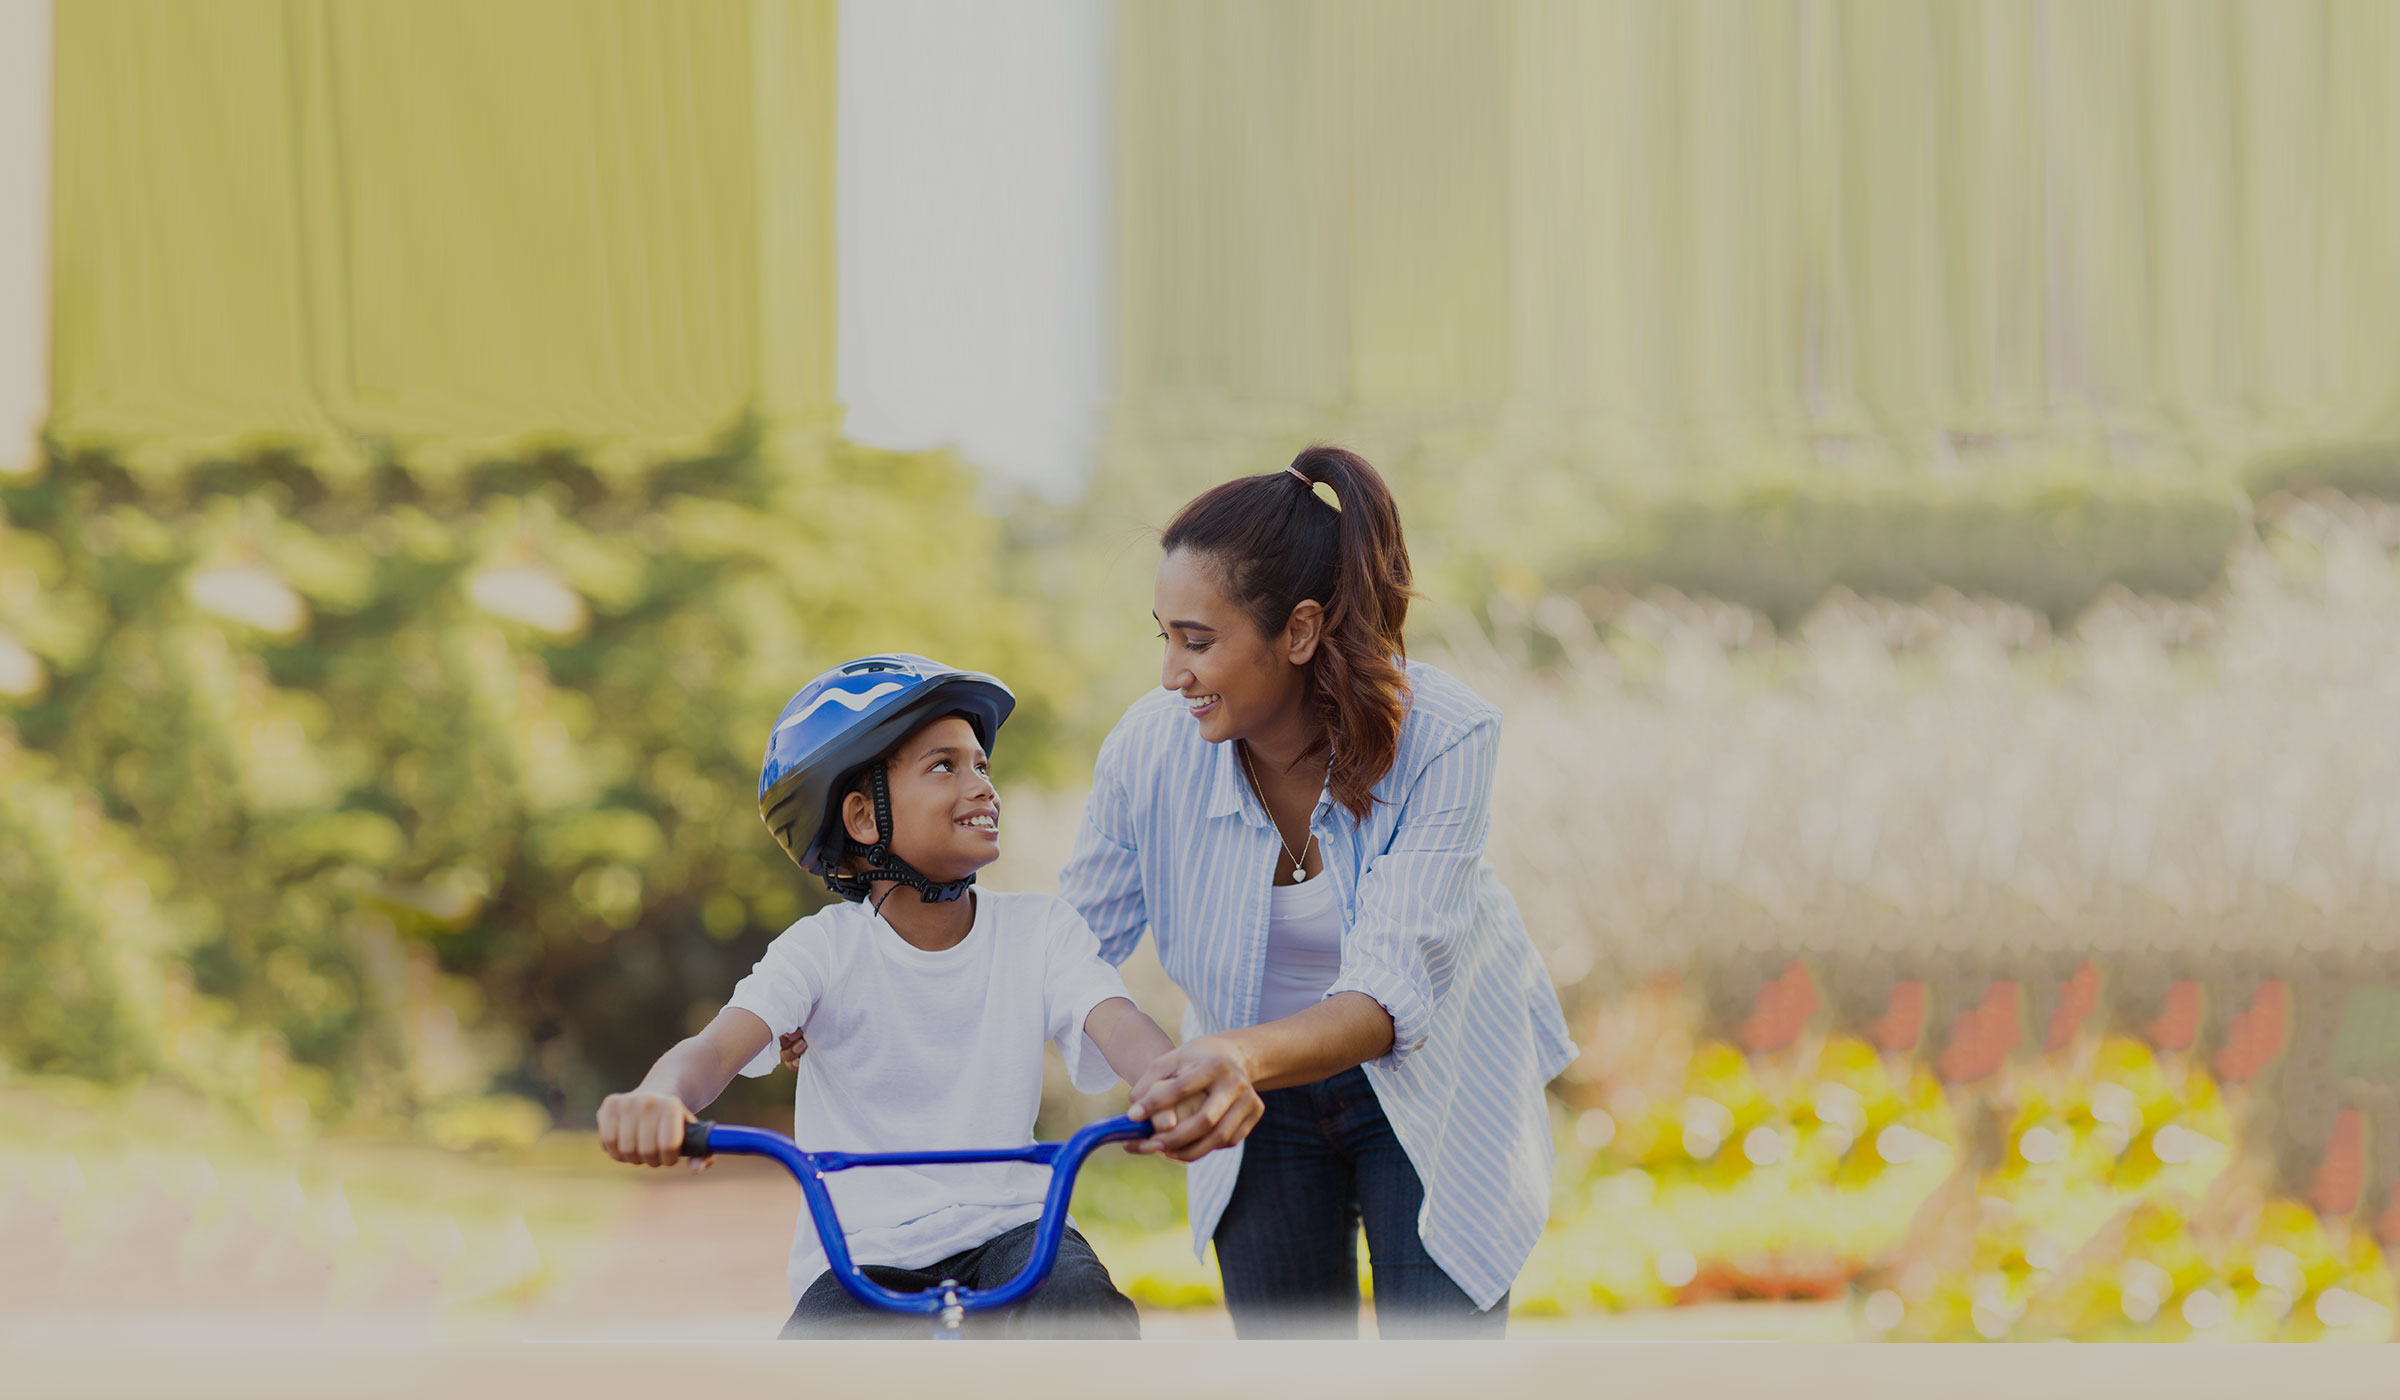 active-mom-with-child-on-bike4